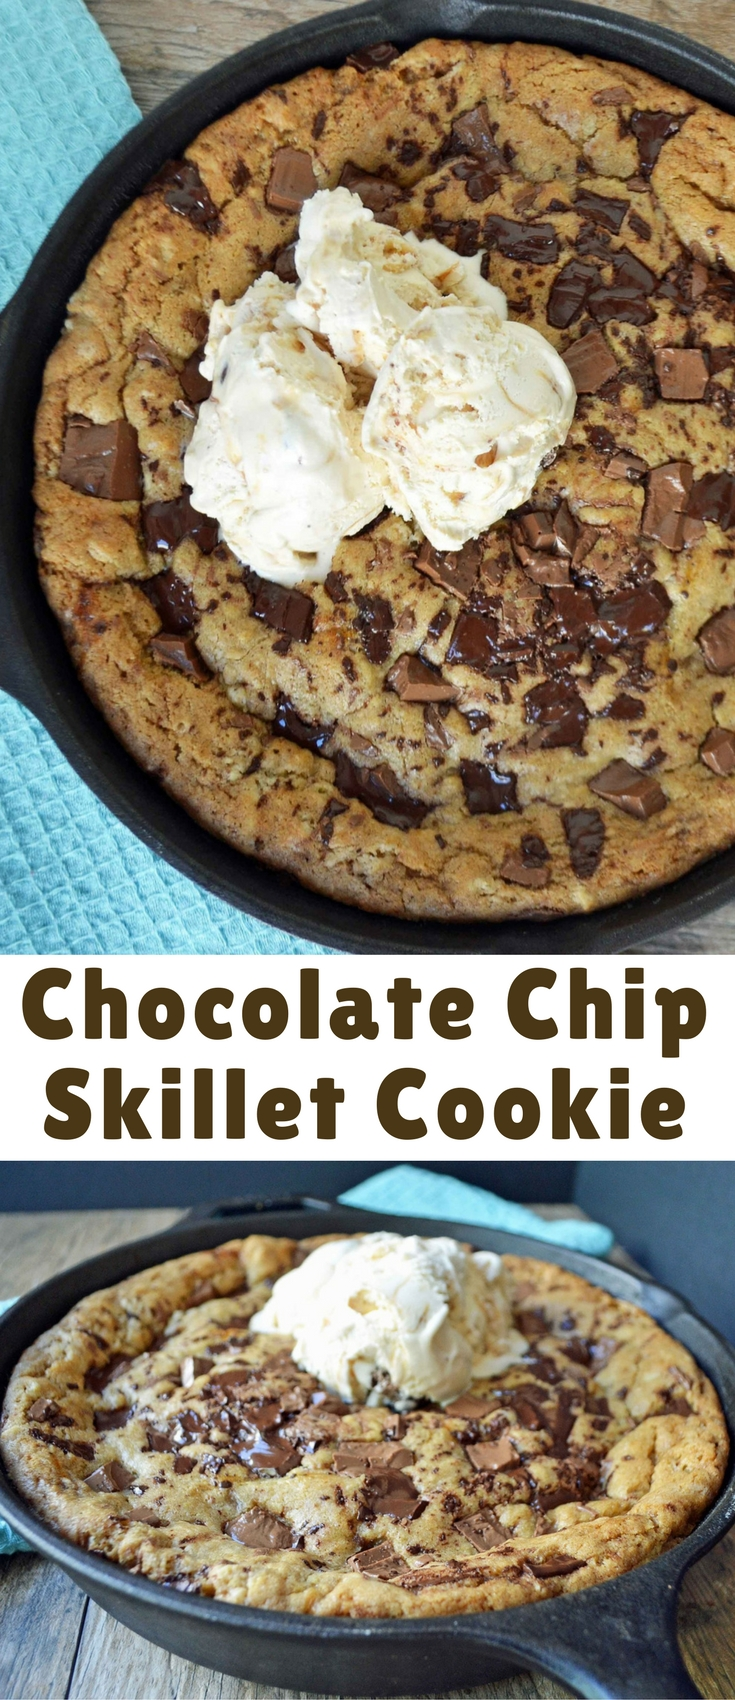 Lady's Chocolate Chip Skillet Cookie is a warm, ooey, gooey chocolate chip cookie topped with vanilla bean ice cream.